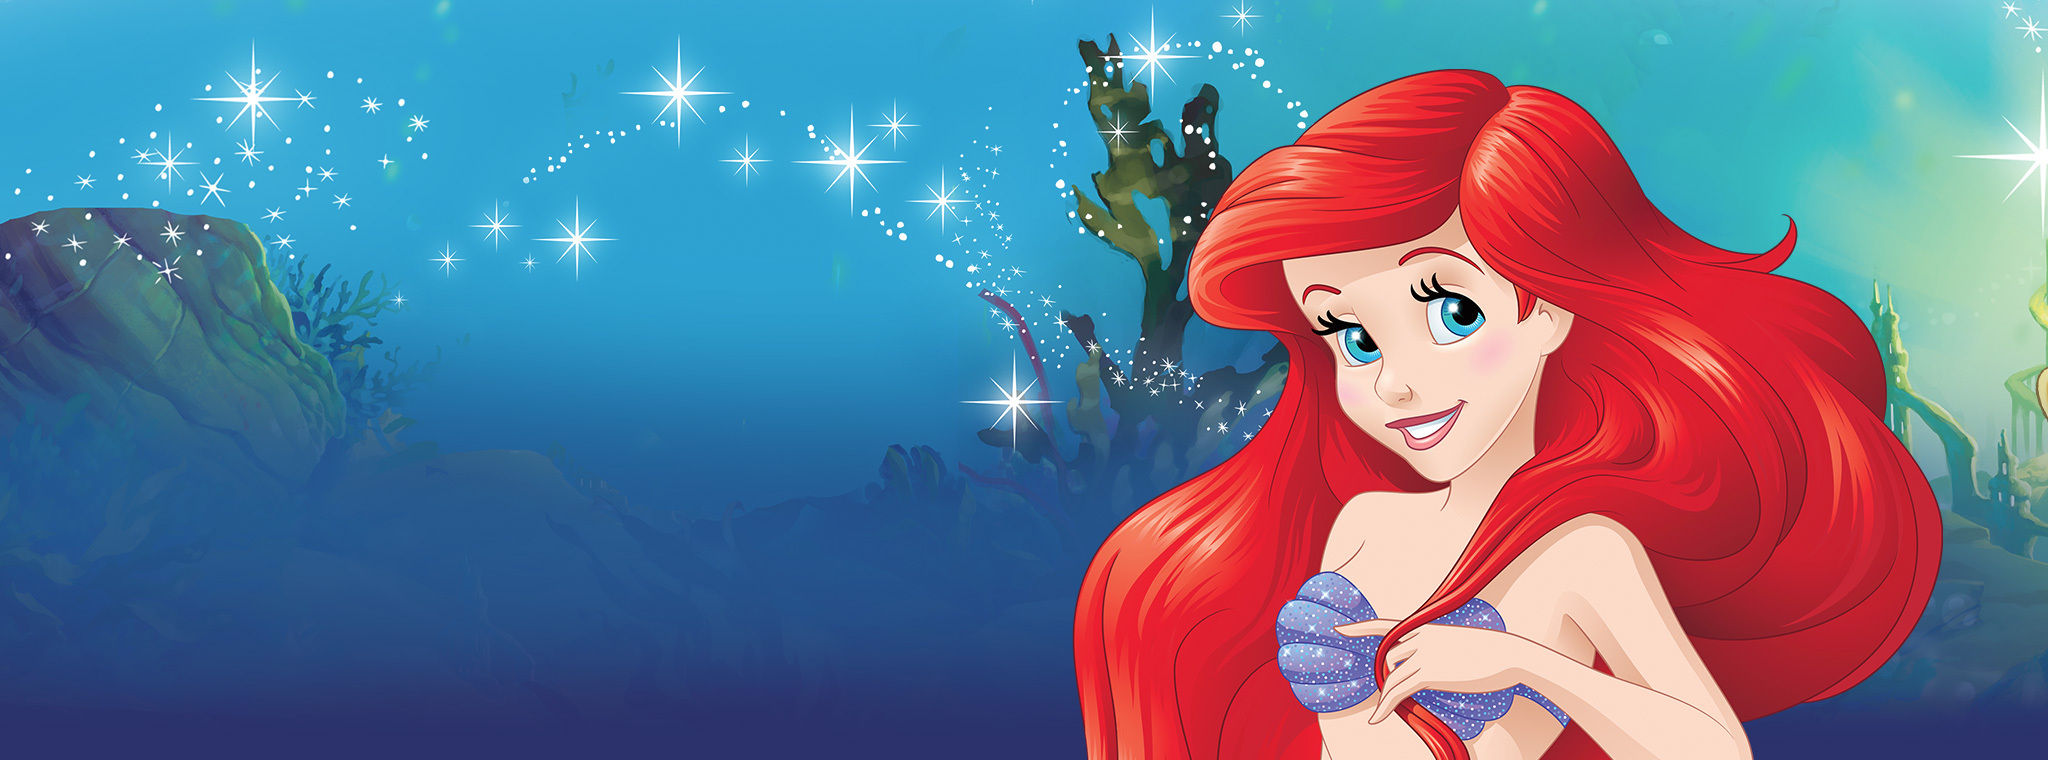 Ariel - Games & Videos - The Little Mermaid - Disney Princess UK